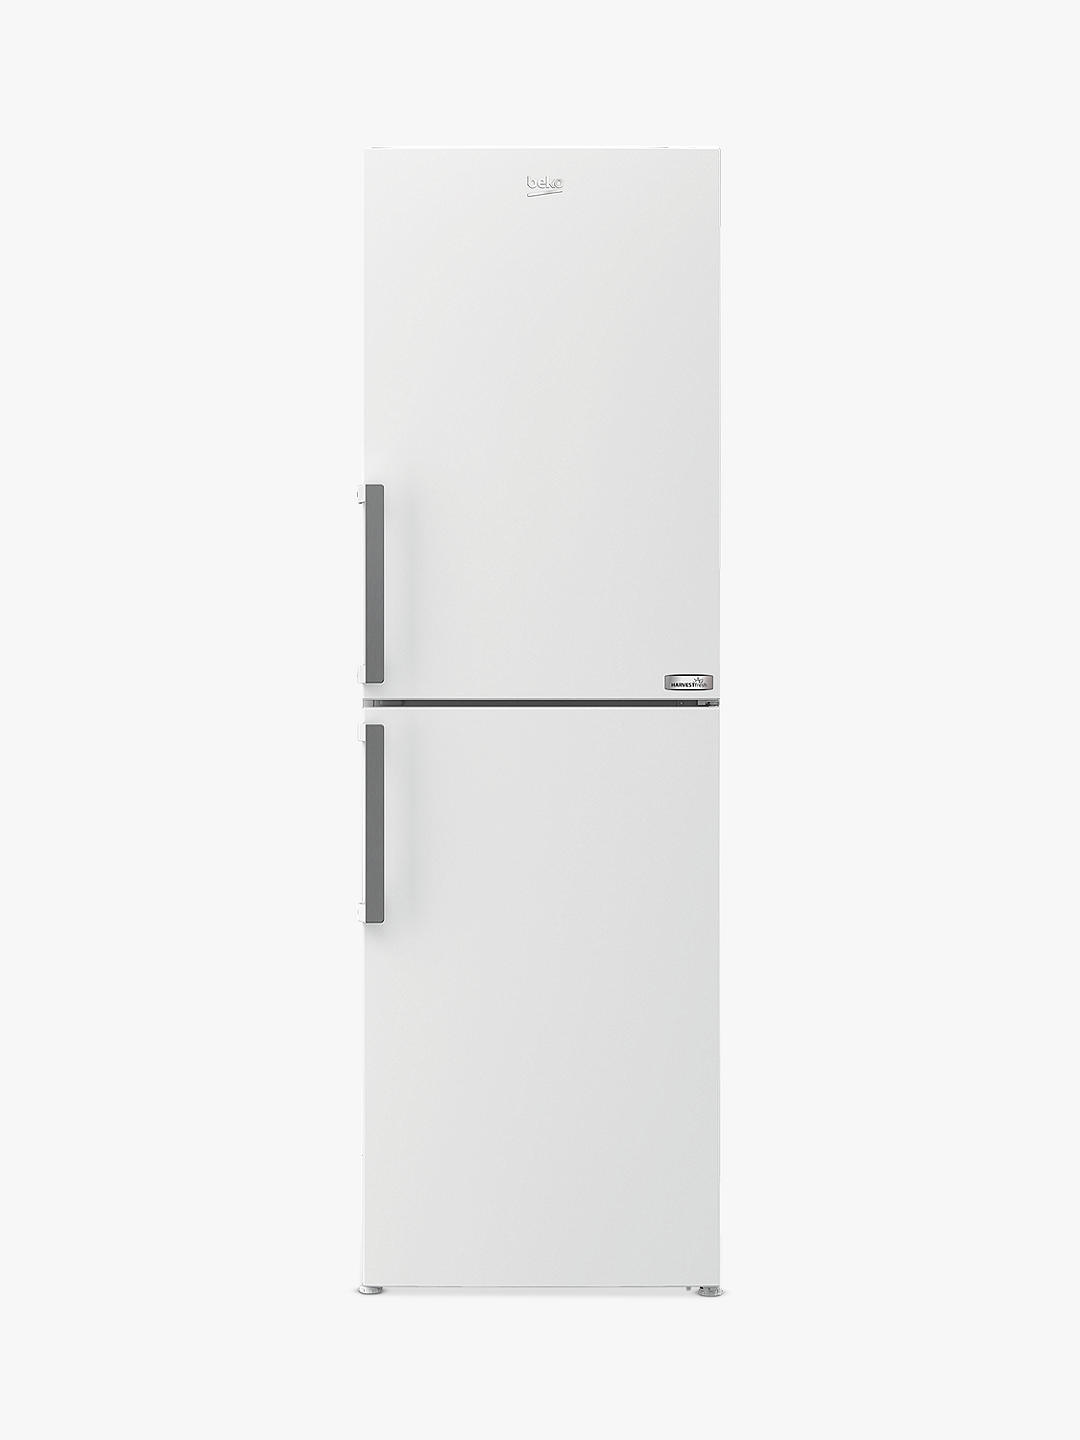 Buy Beko HarvestFresh CFP3691VW Freestanding 50/50 Fridge Freezer, White Online at johnlewis.com